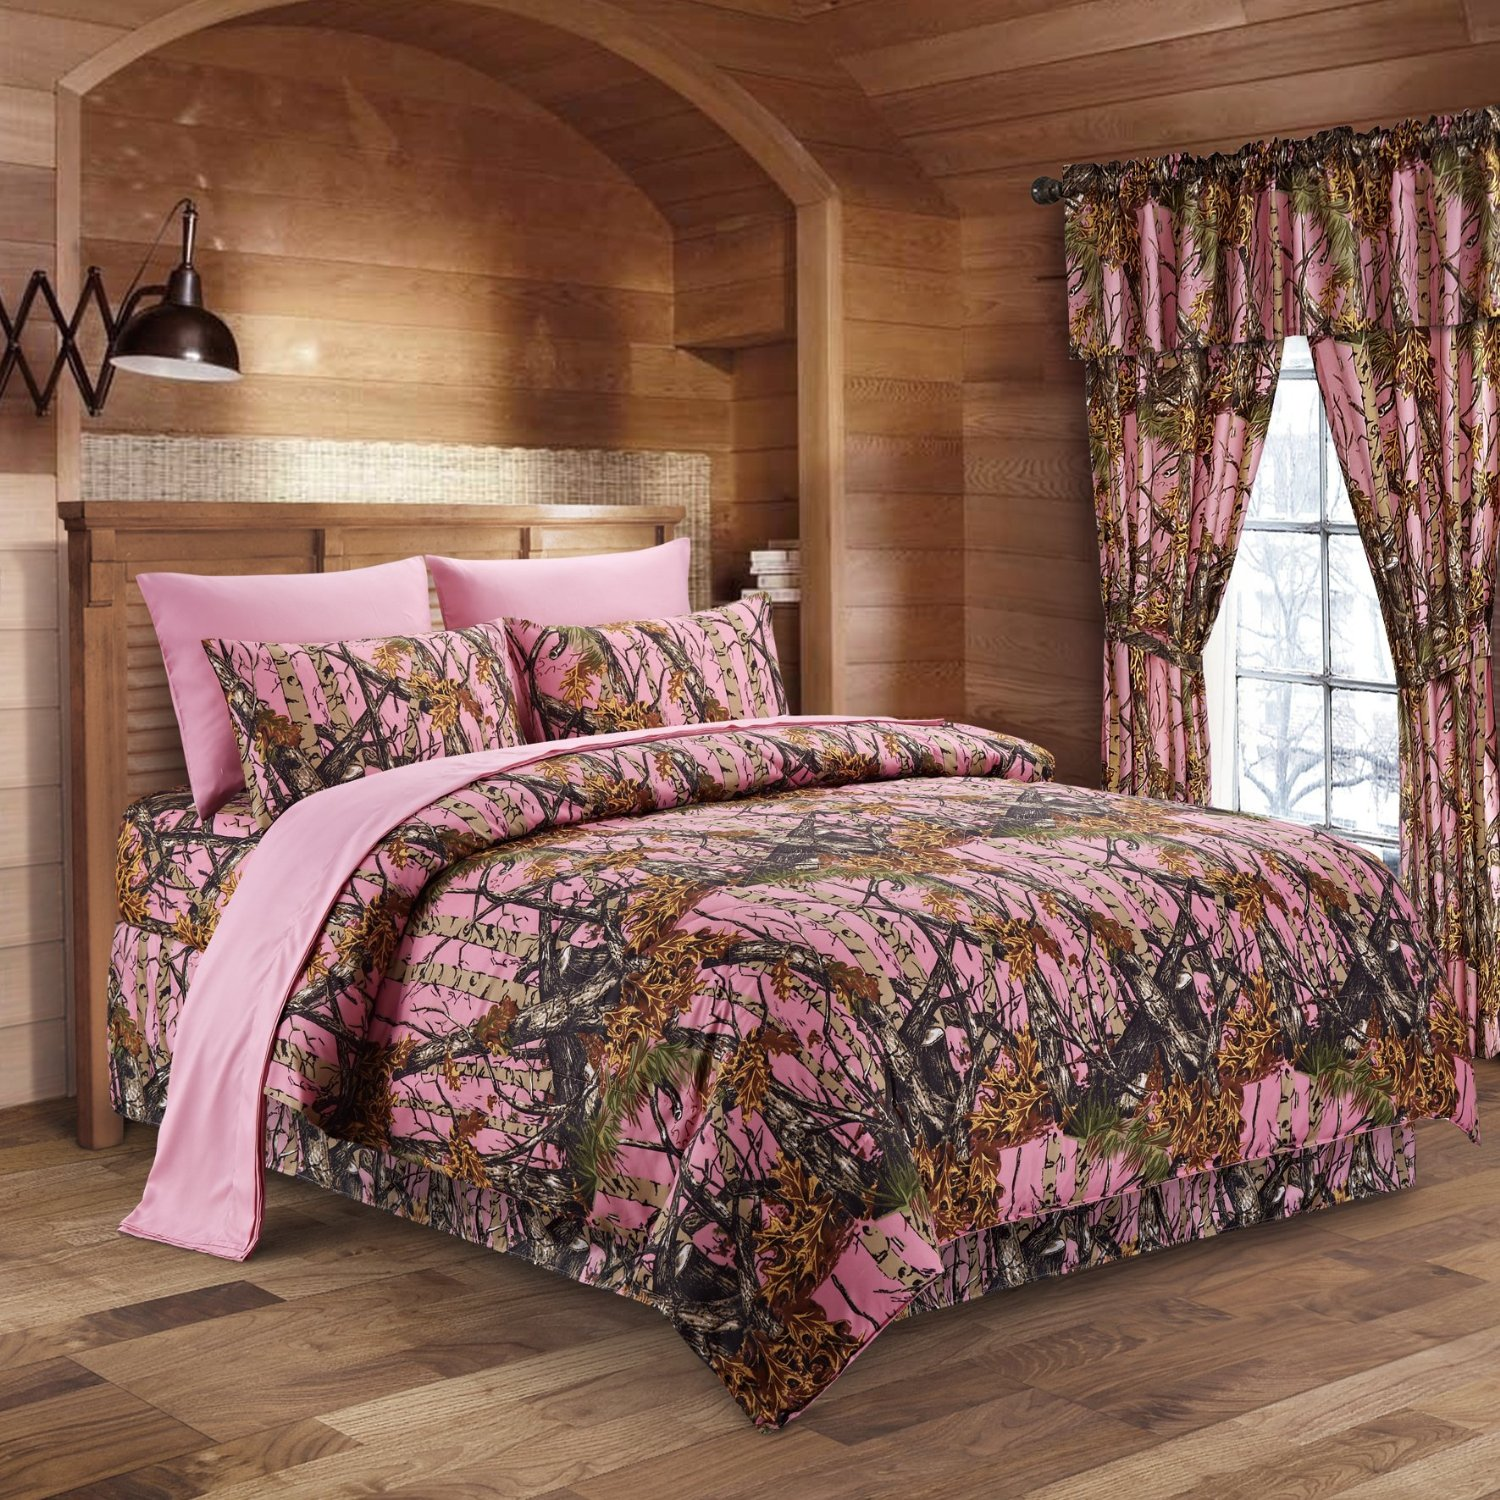 The Woods Pink Camouflage Twin 5pc Premium Luxury Comforter, Sheet, Pillowcases, and Bed Skirt Set by Regal Comfort Camo Bedding Set For Hunters Cabin or Rustic Lodge Teens Boys and Girls